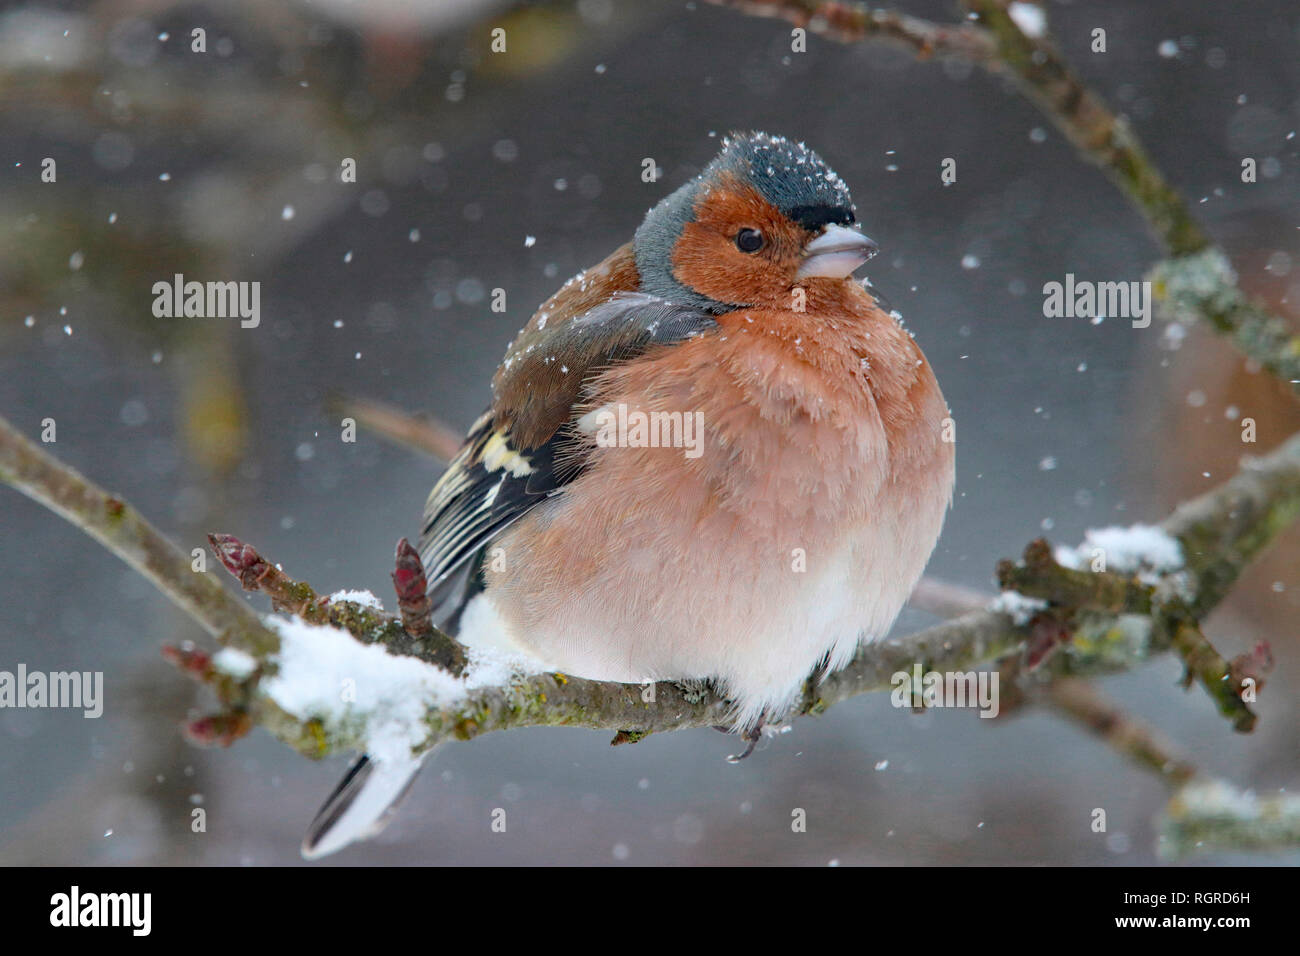 common chaffinch, male, (Fringilla coelebs) - Stock Image